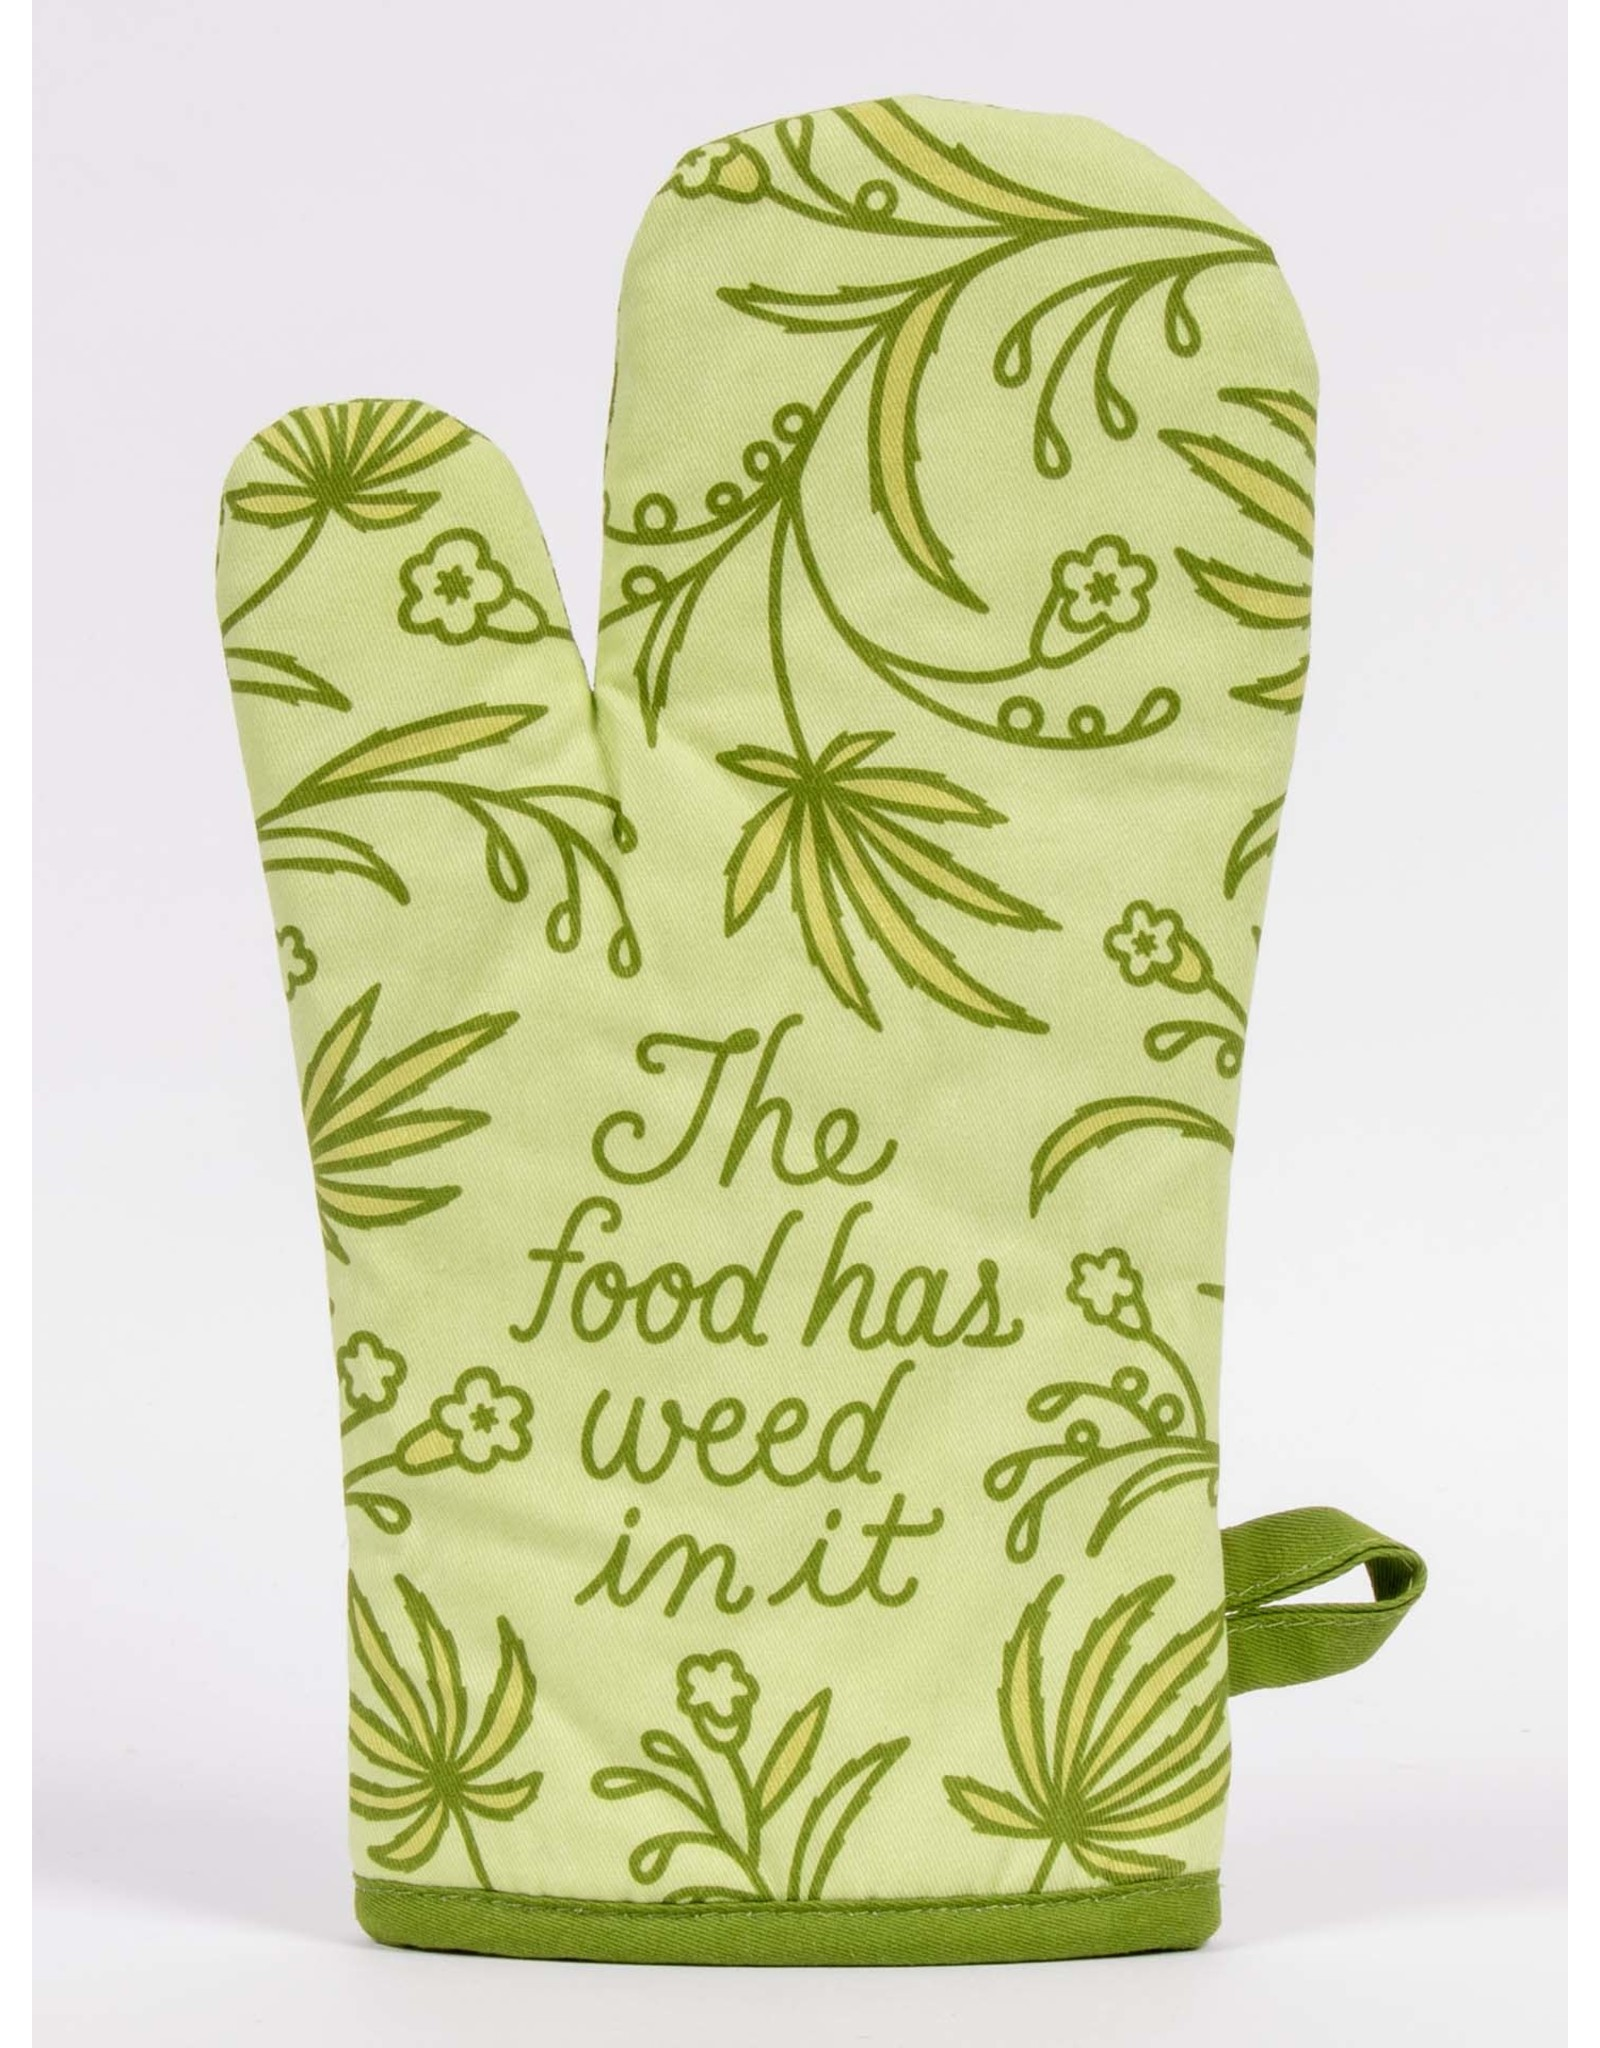 Blue Q - Oven Mitt/Food Has Weed In It